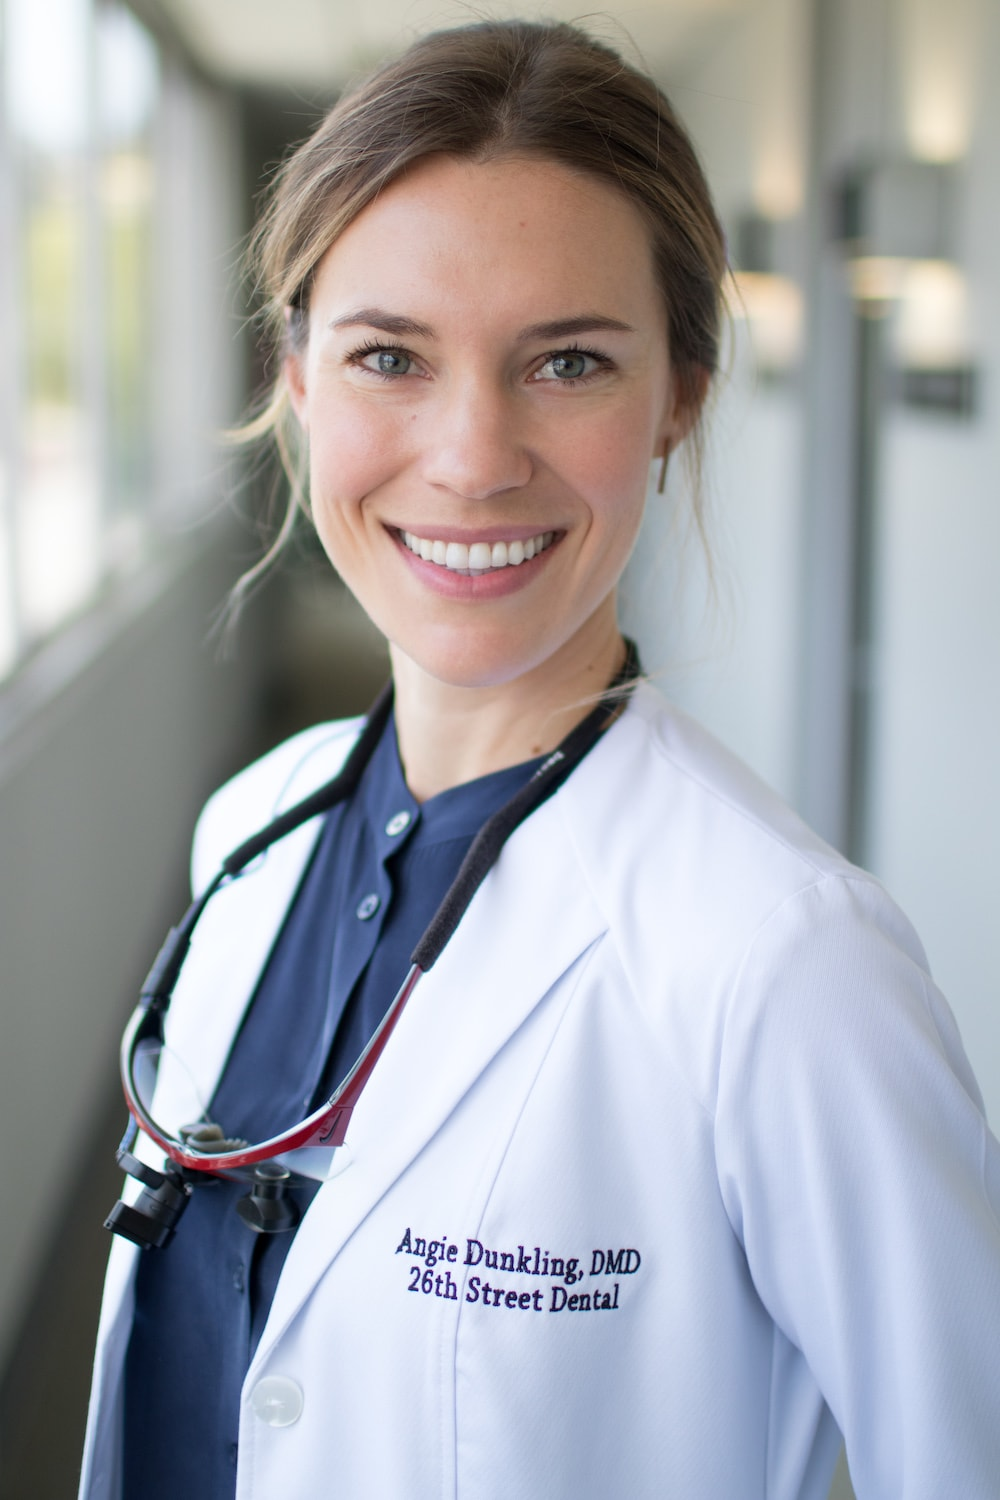 Dr. Angie Dunkling Serving Santa Monica, CA